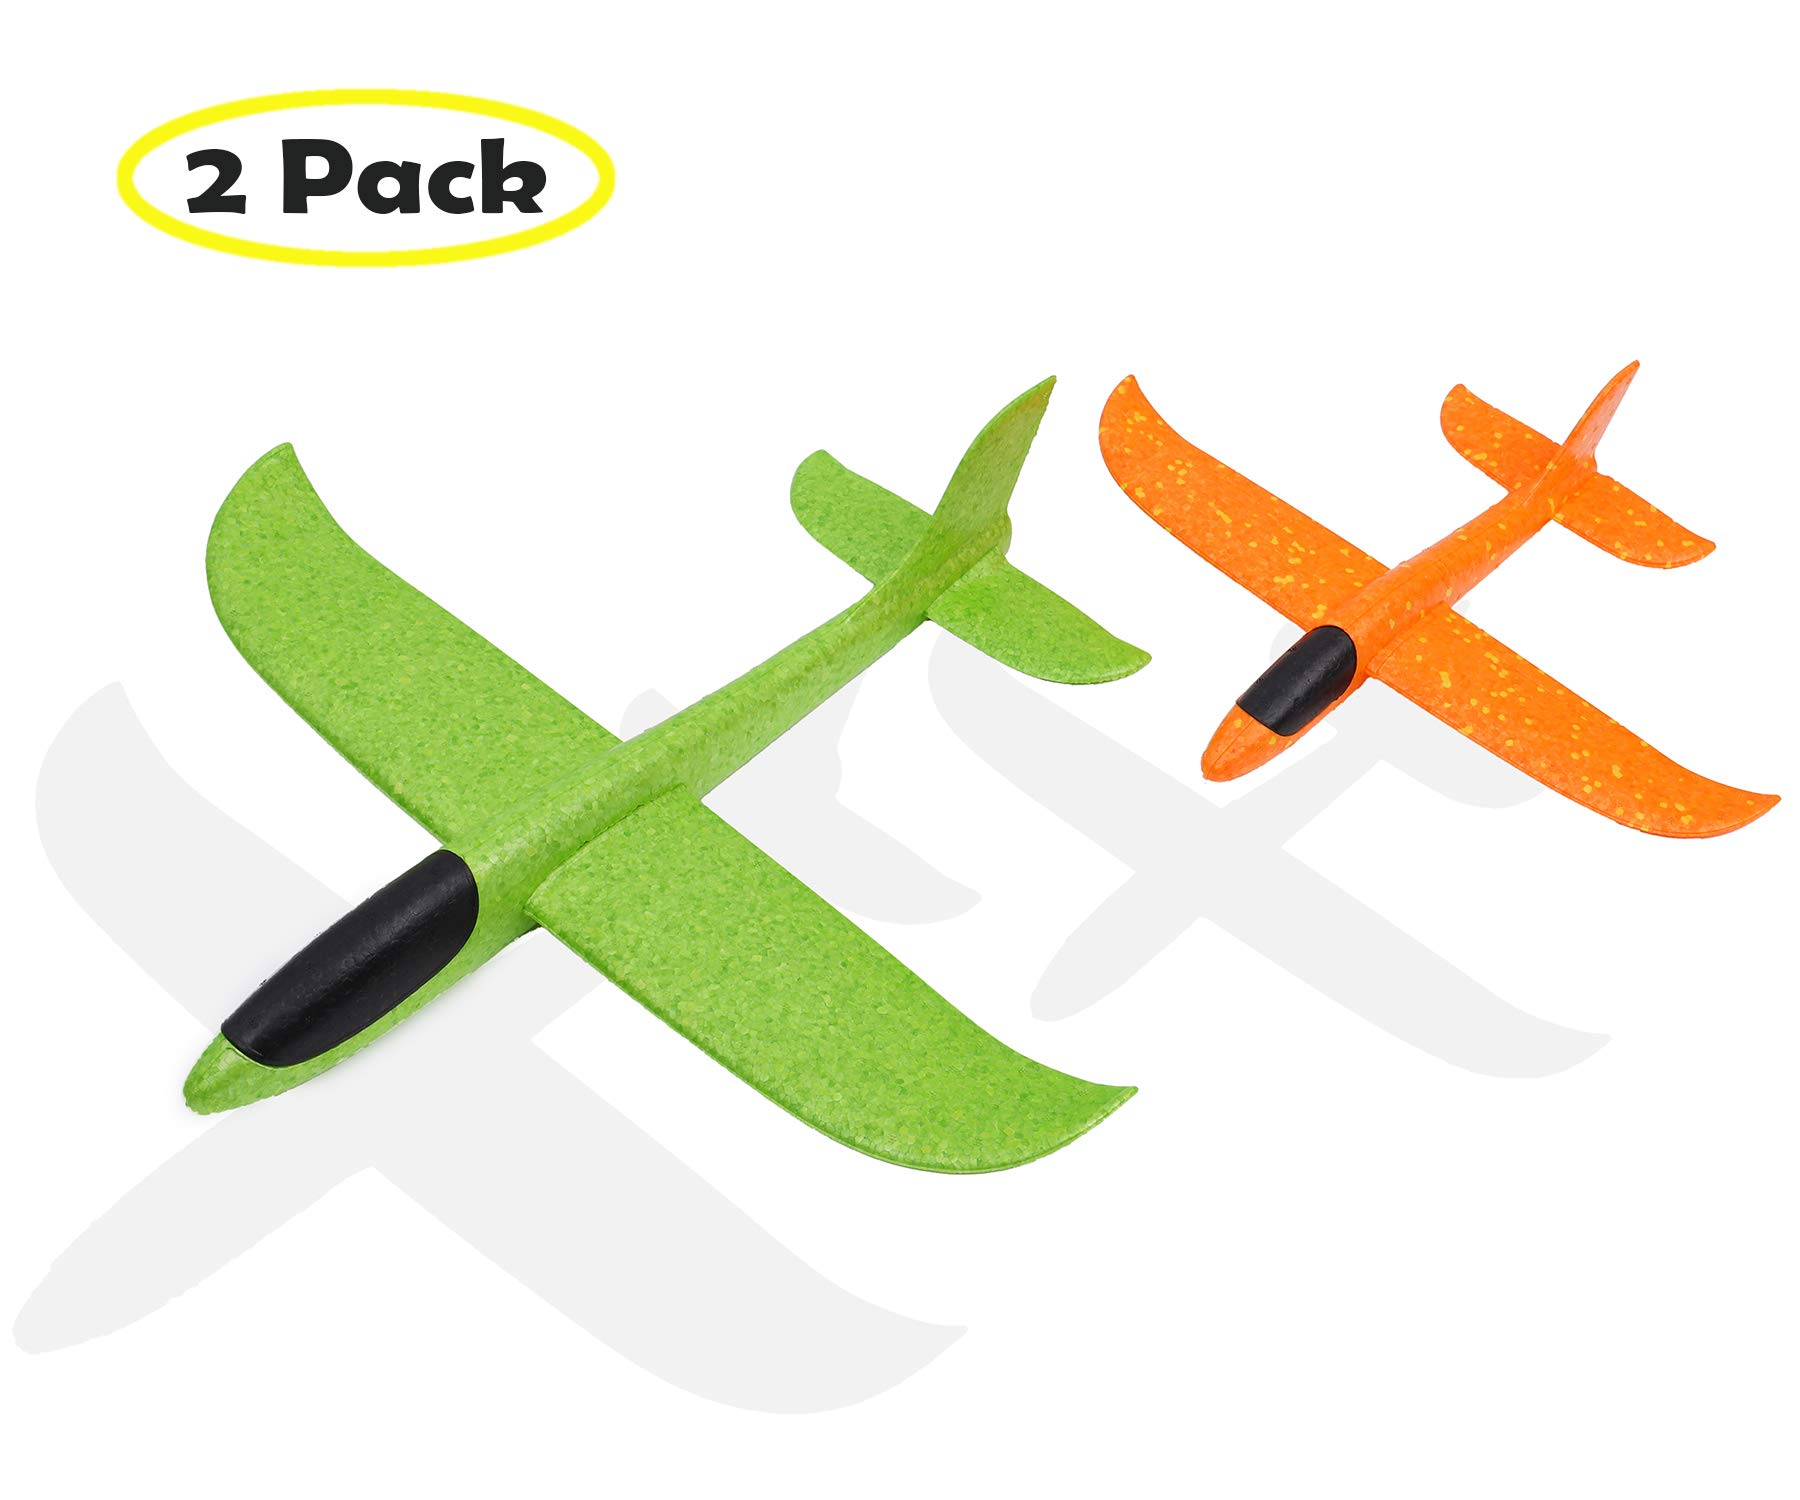 Vigeiya 2 Pack Upgraded 19 inches Throwing Foam Airplane Outdoor Sports Toy Hand Launch Glider